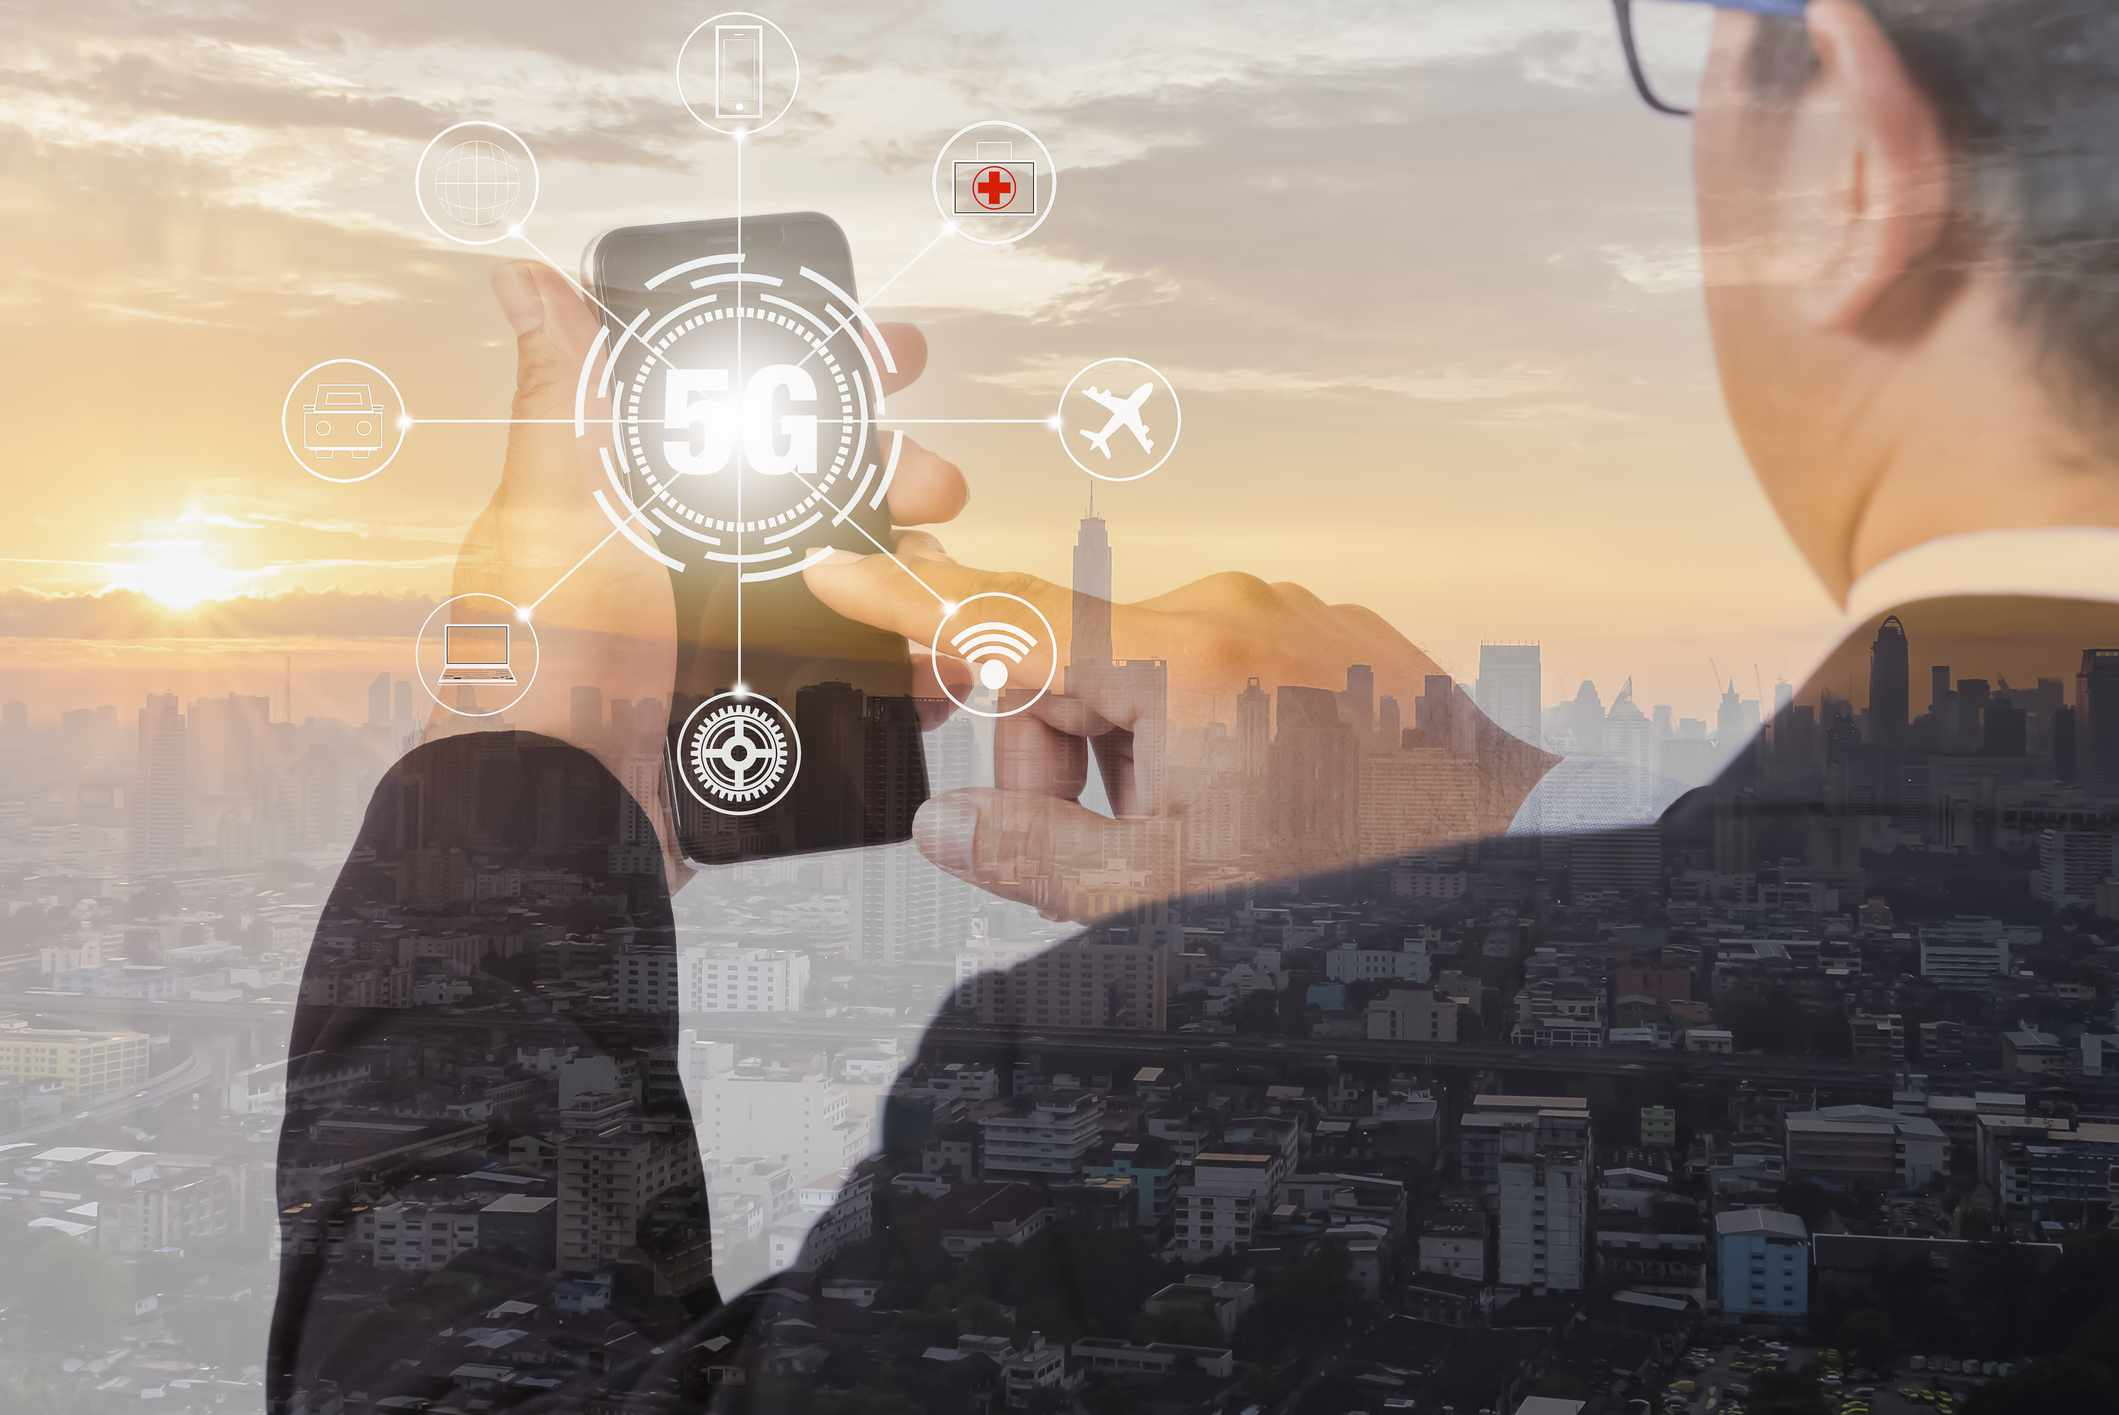 Double exposure, businessperson use smartphone with 5G network twilight in the morining bigcity overlay background.